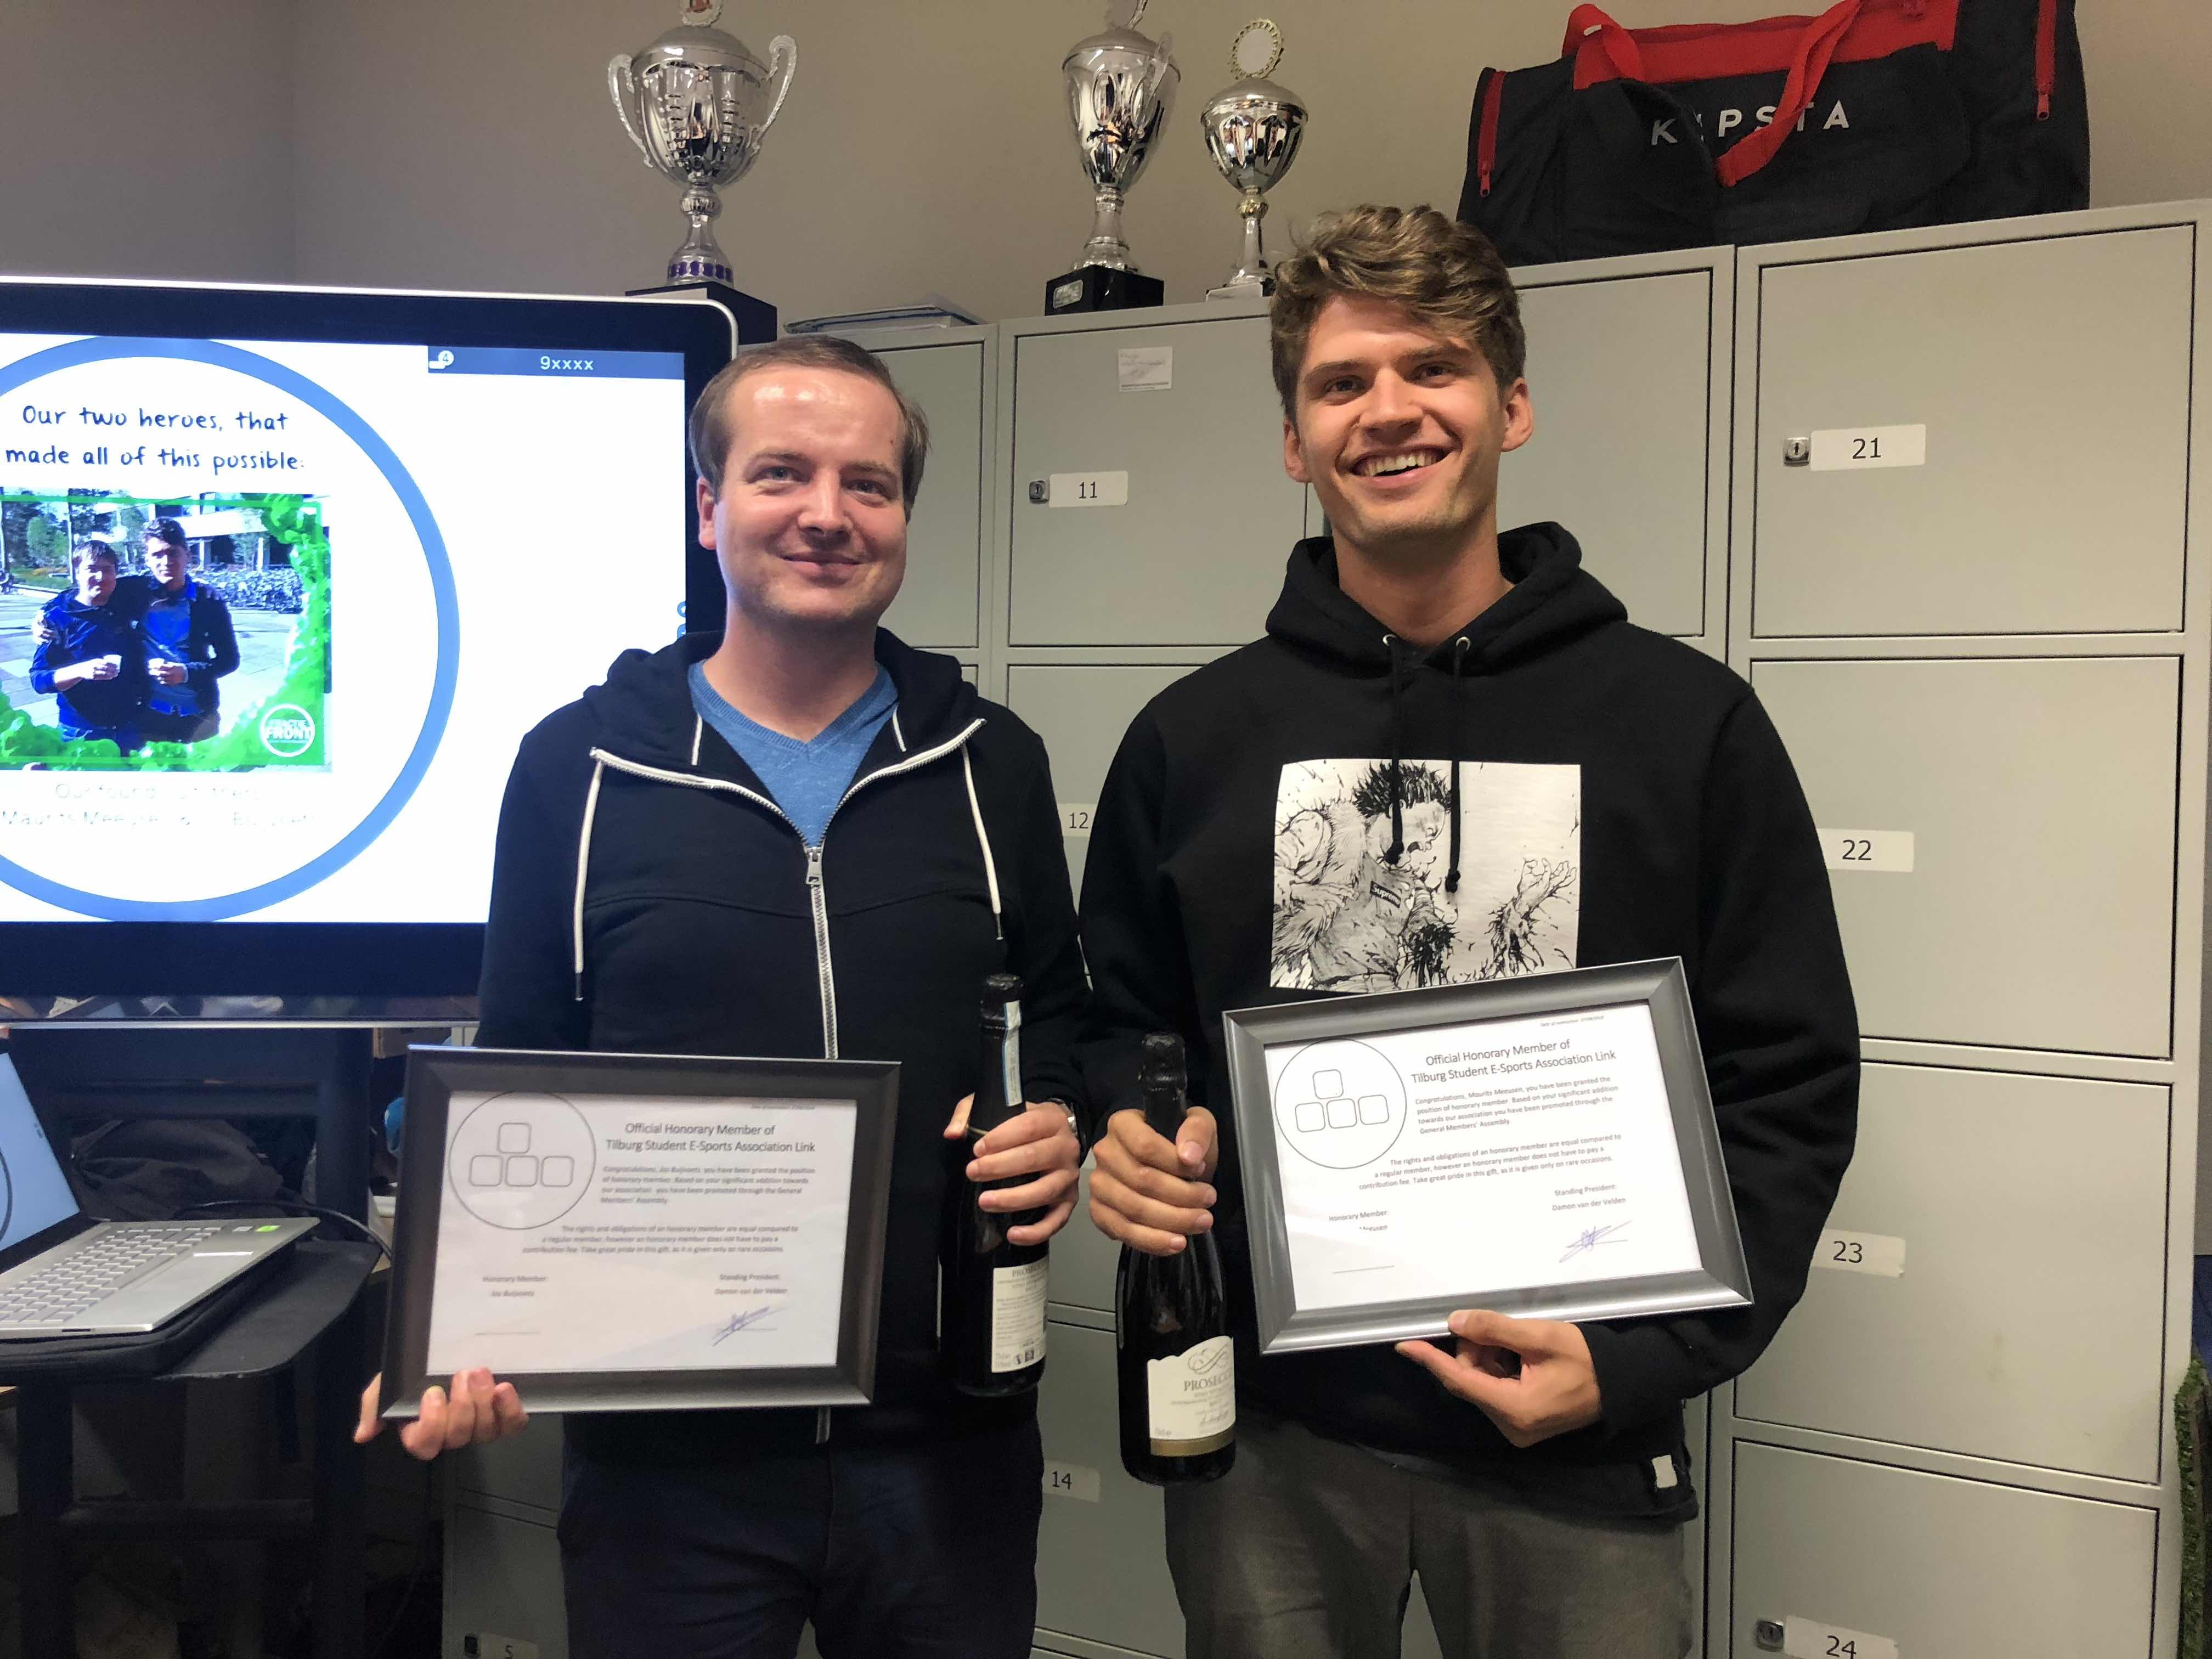 Jos and Maurits holding their certificate